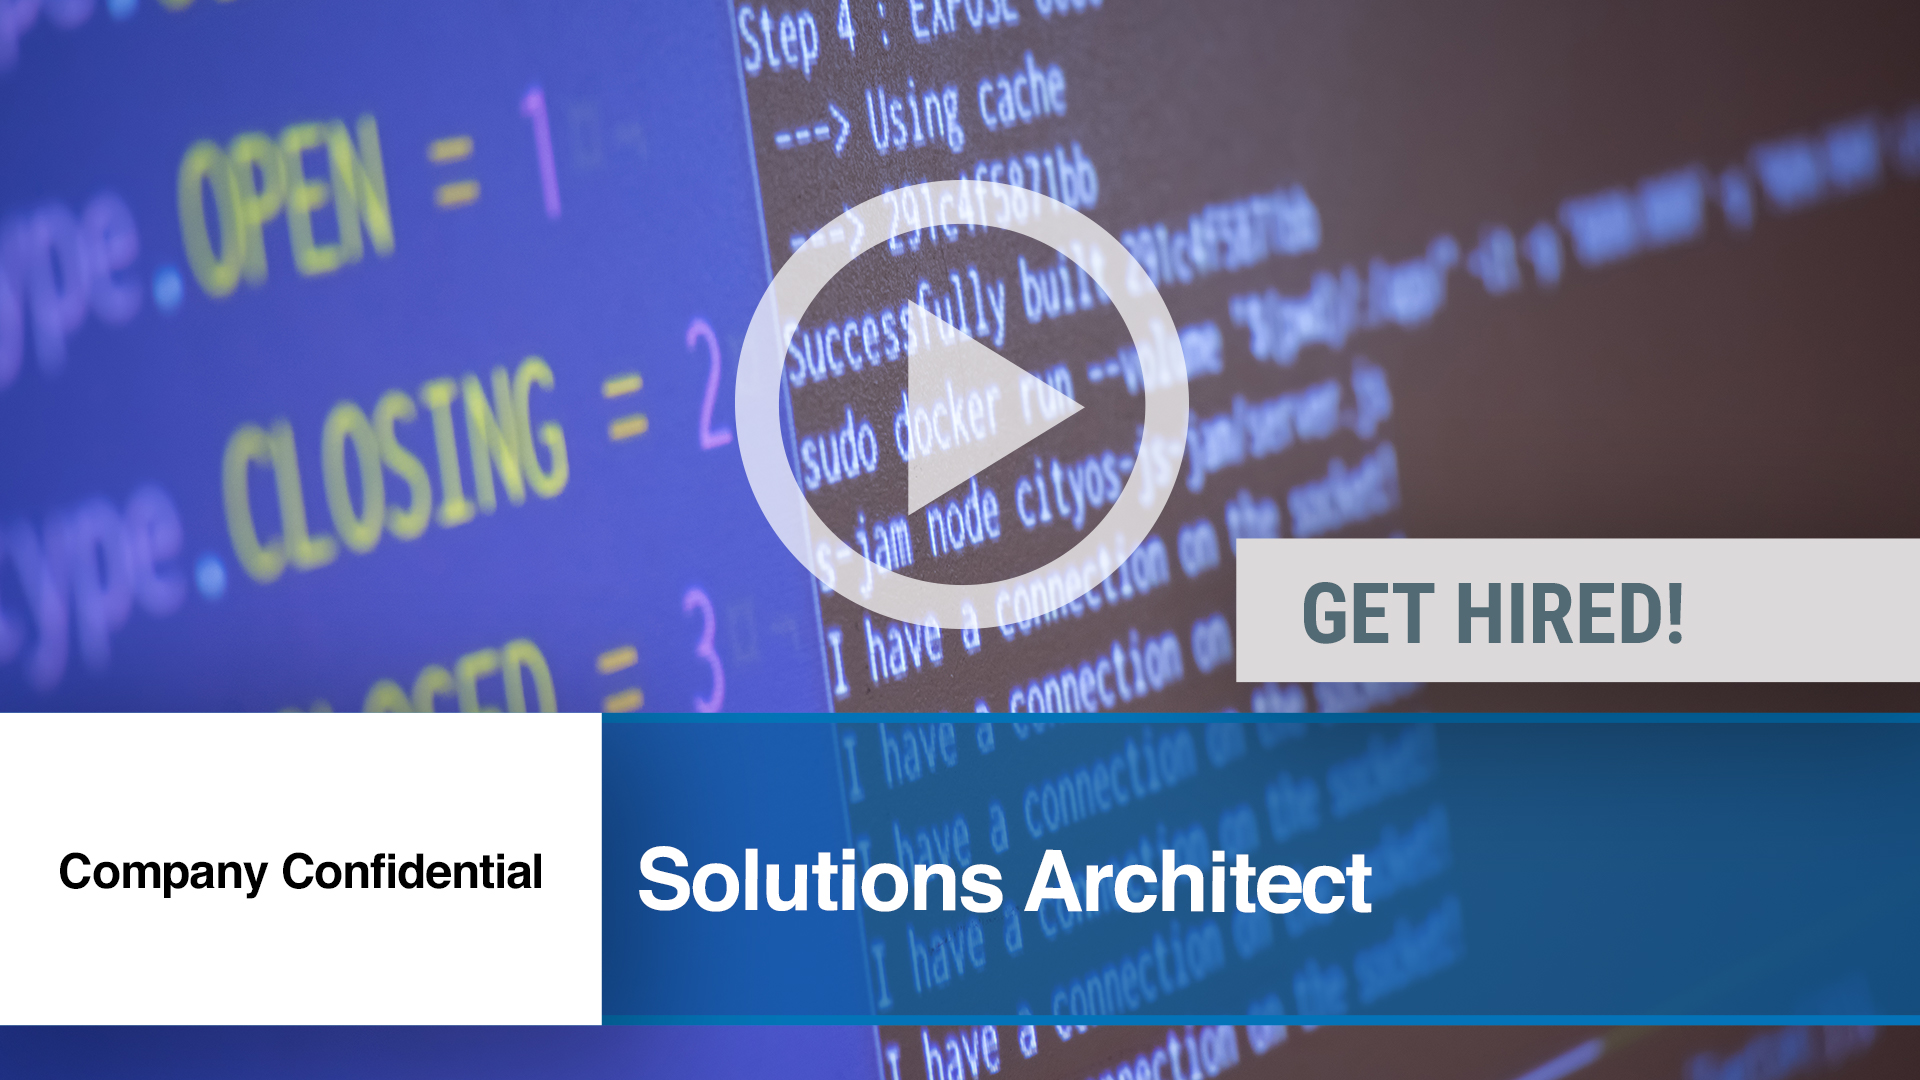 Watch our careers video for available job opening Solutions Architect in Rockford, IL